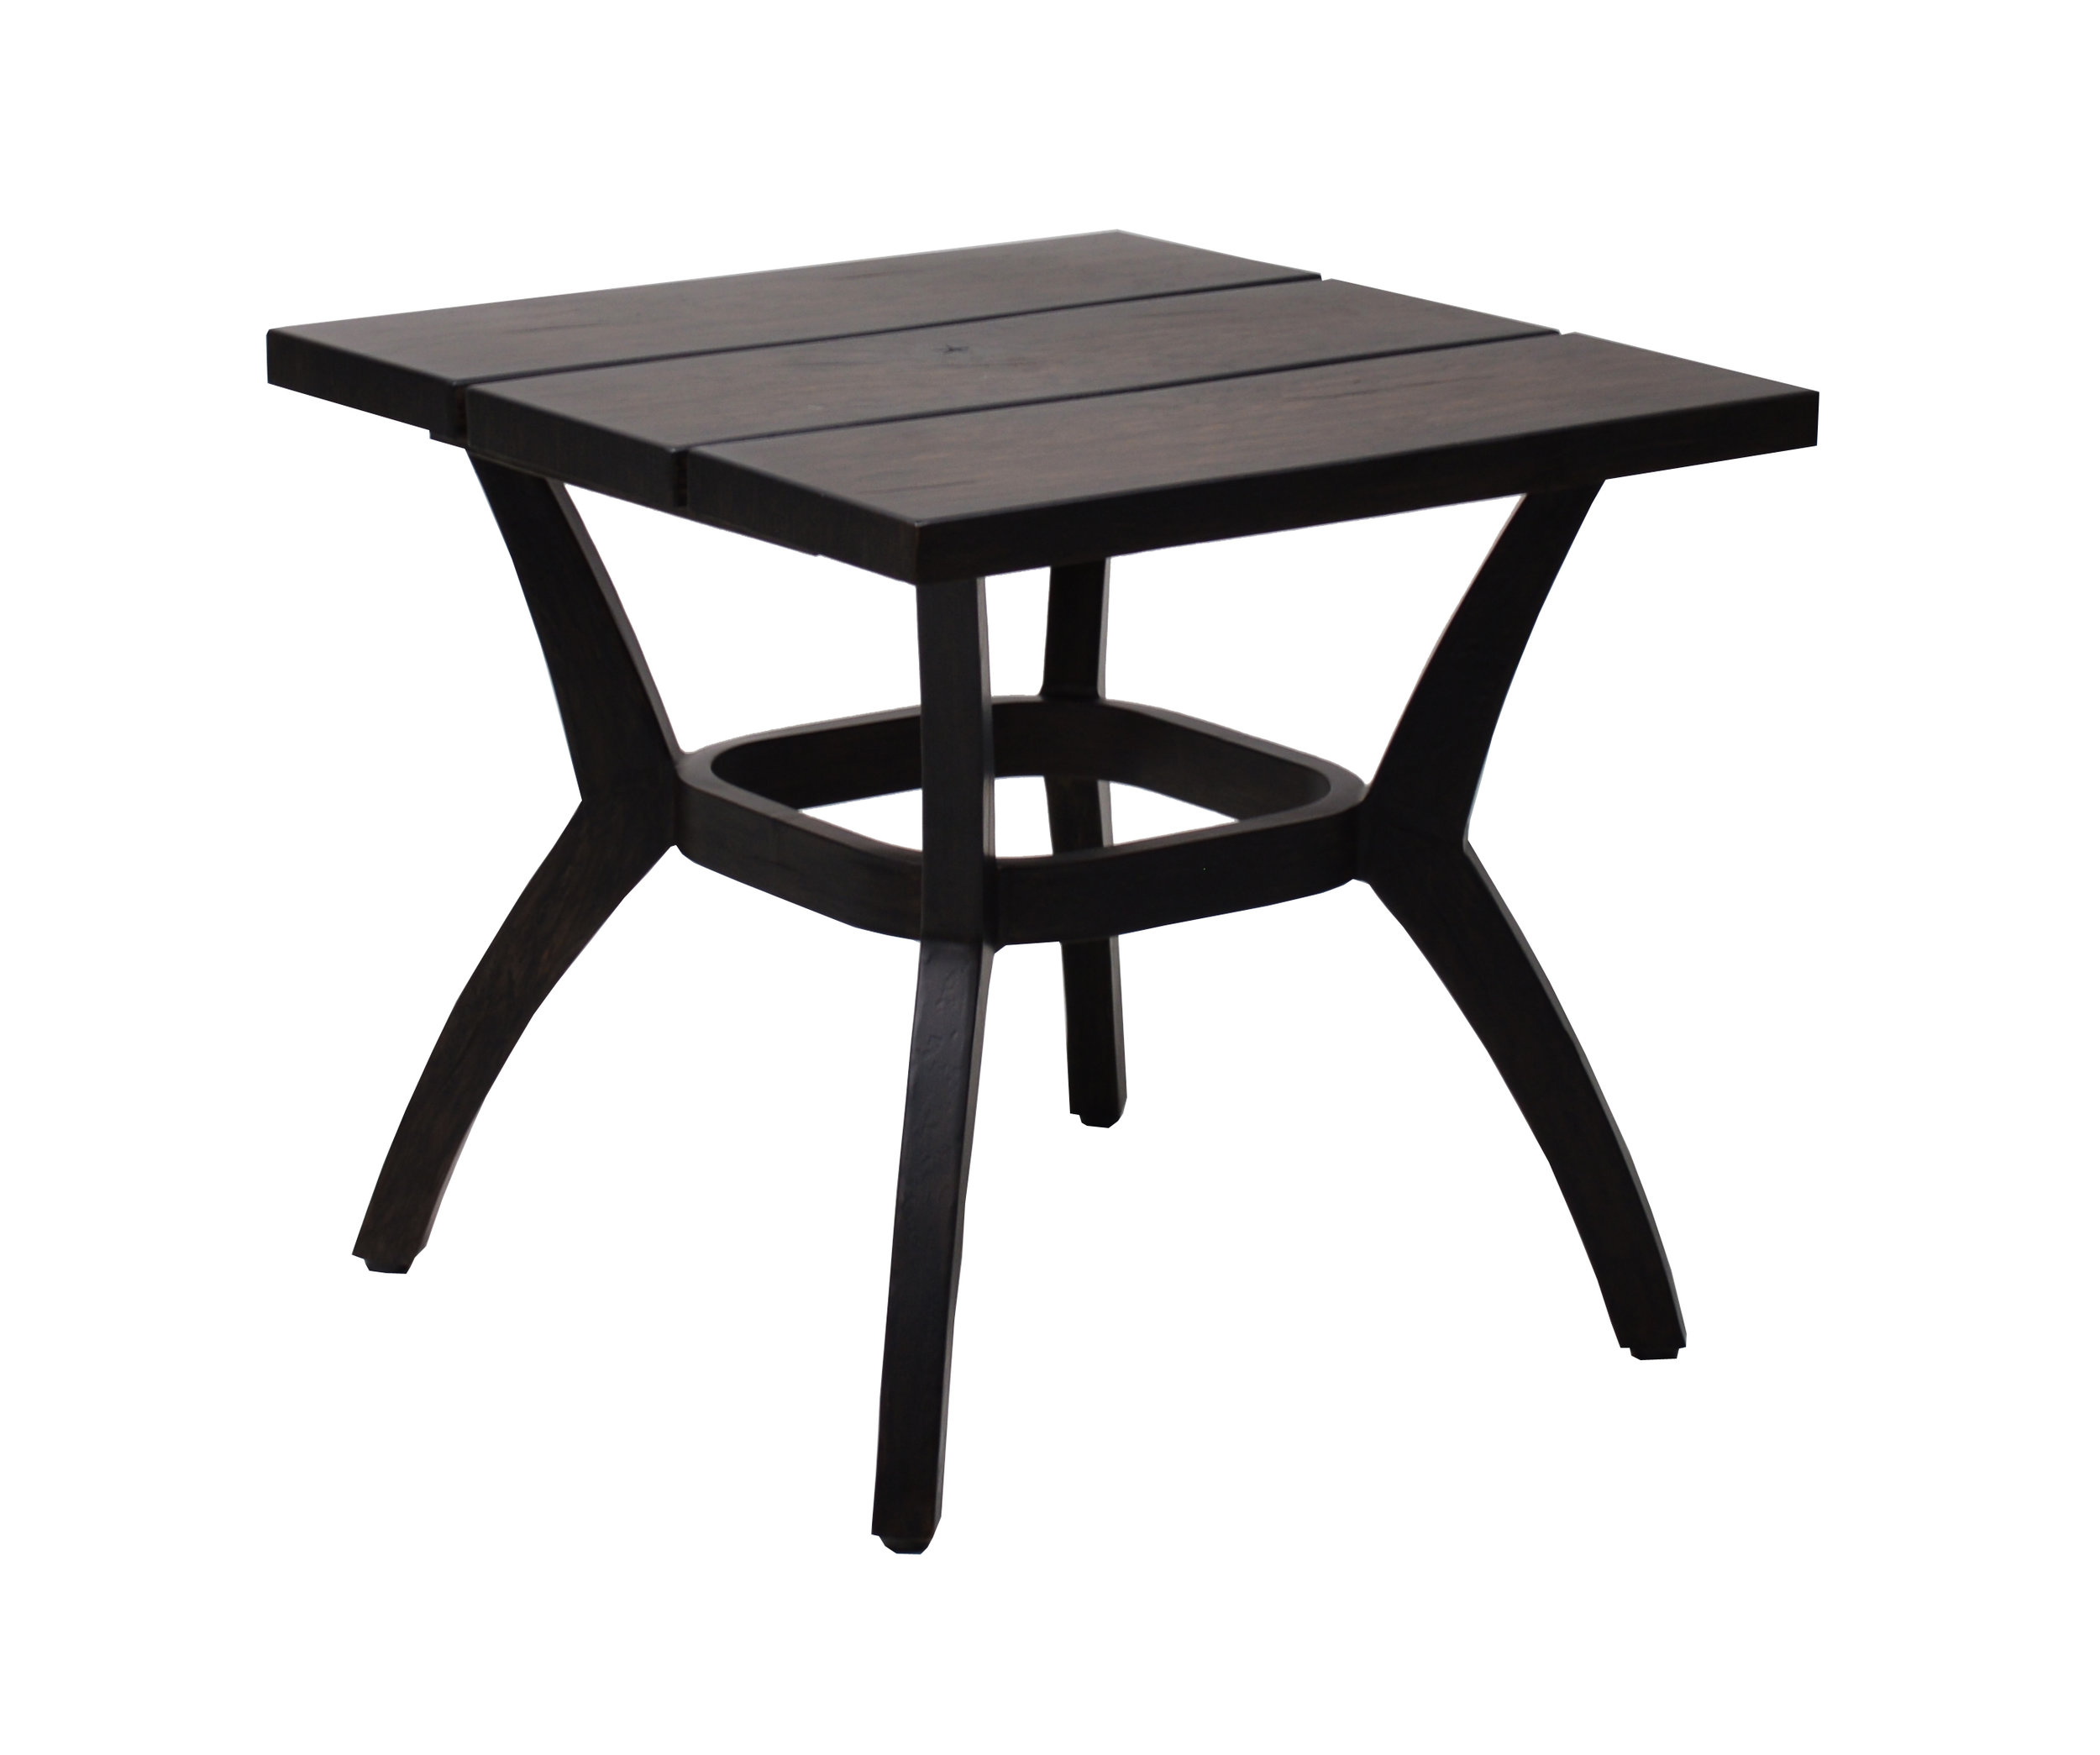 "974222 Tribeca Square End Table   23"" x 23"" x 21"""